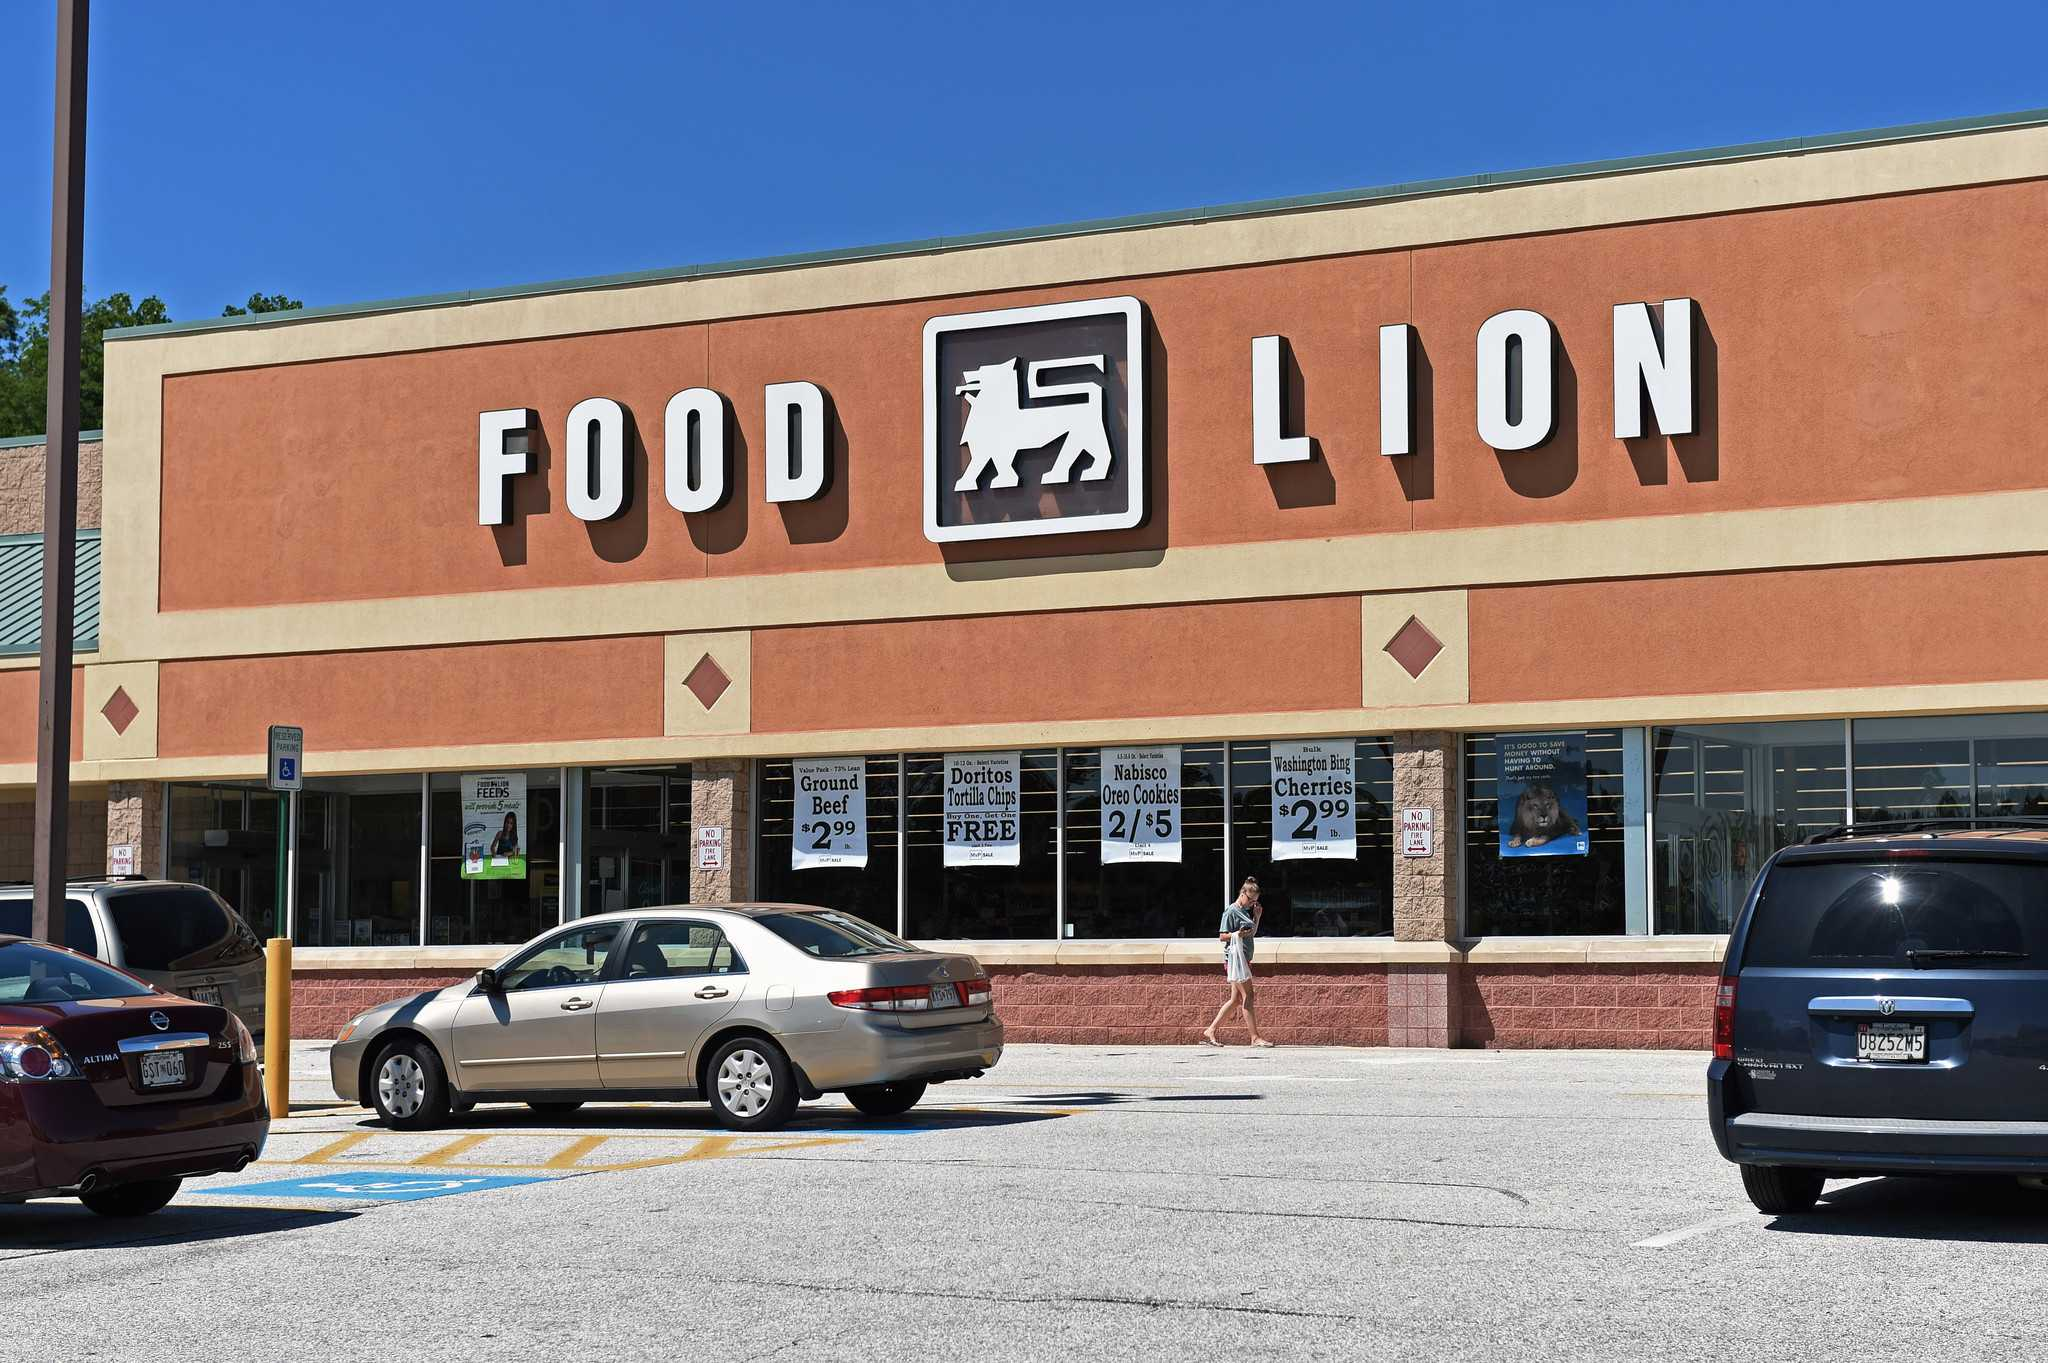 food lion near me, nearest food lion